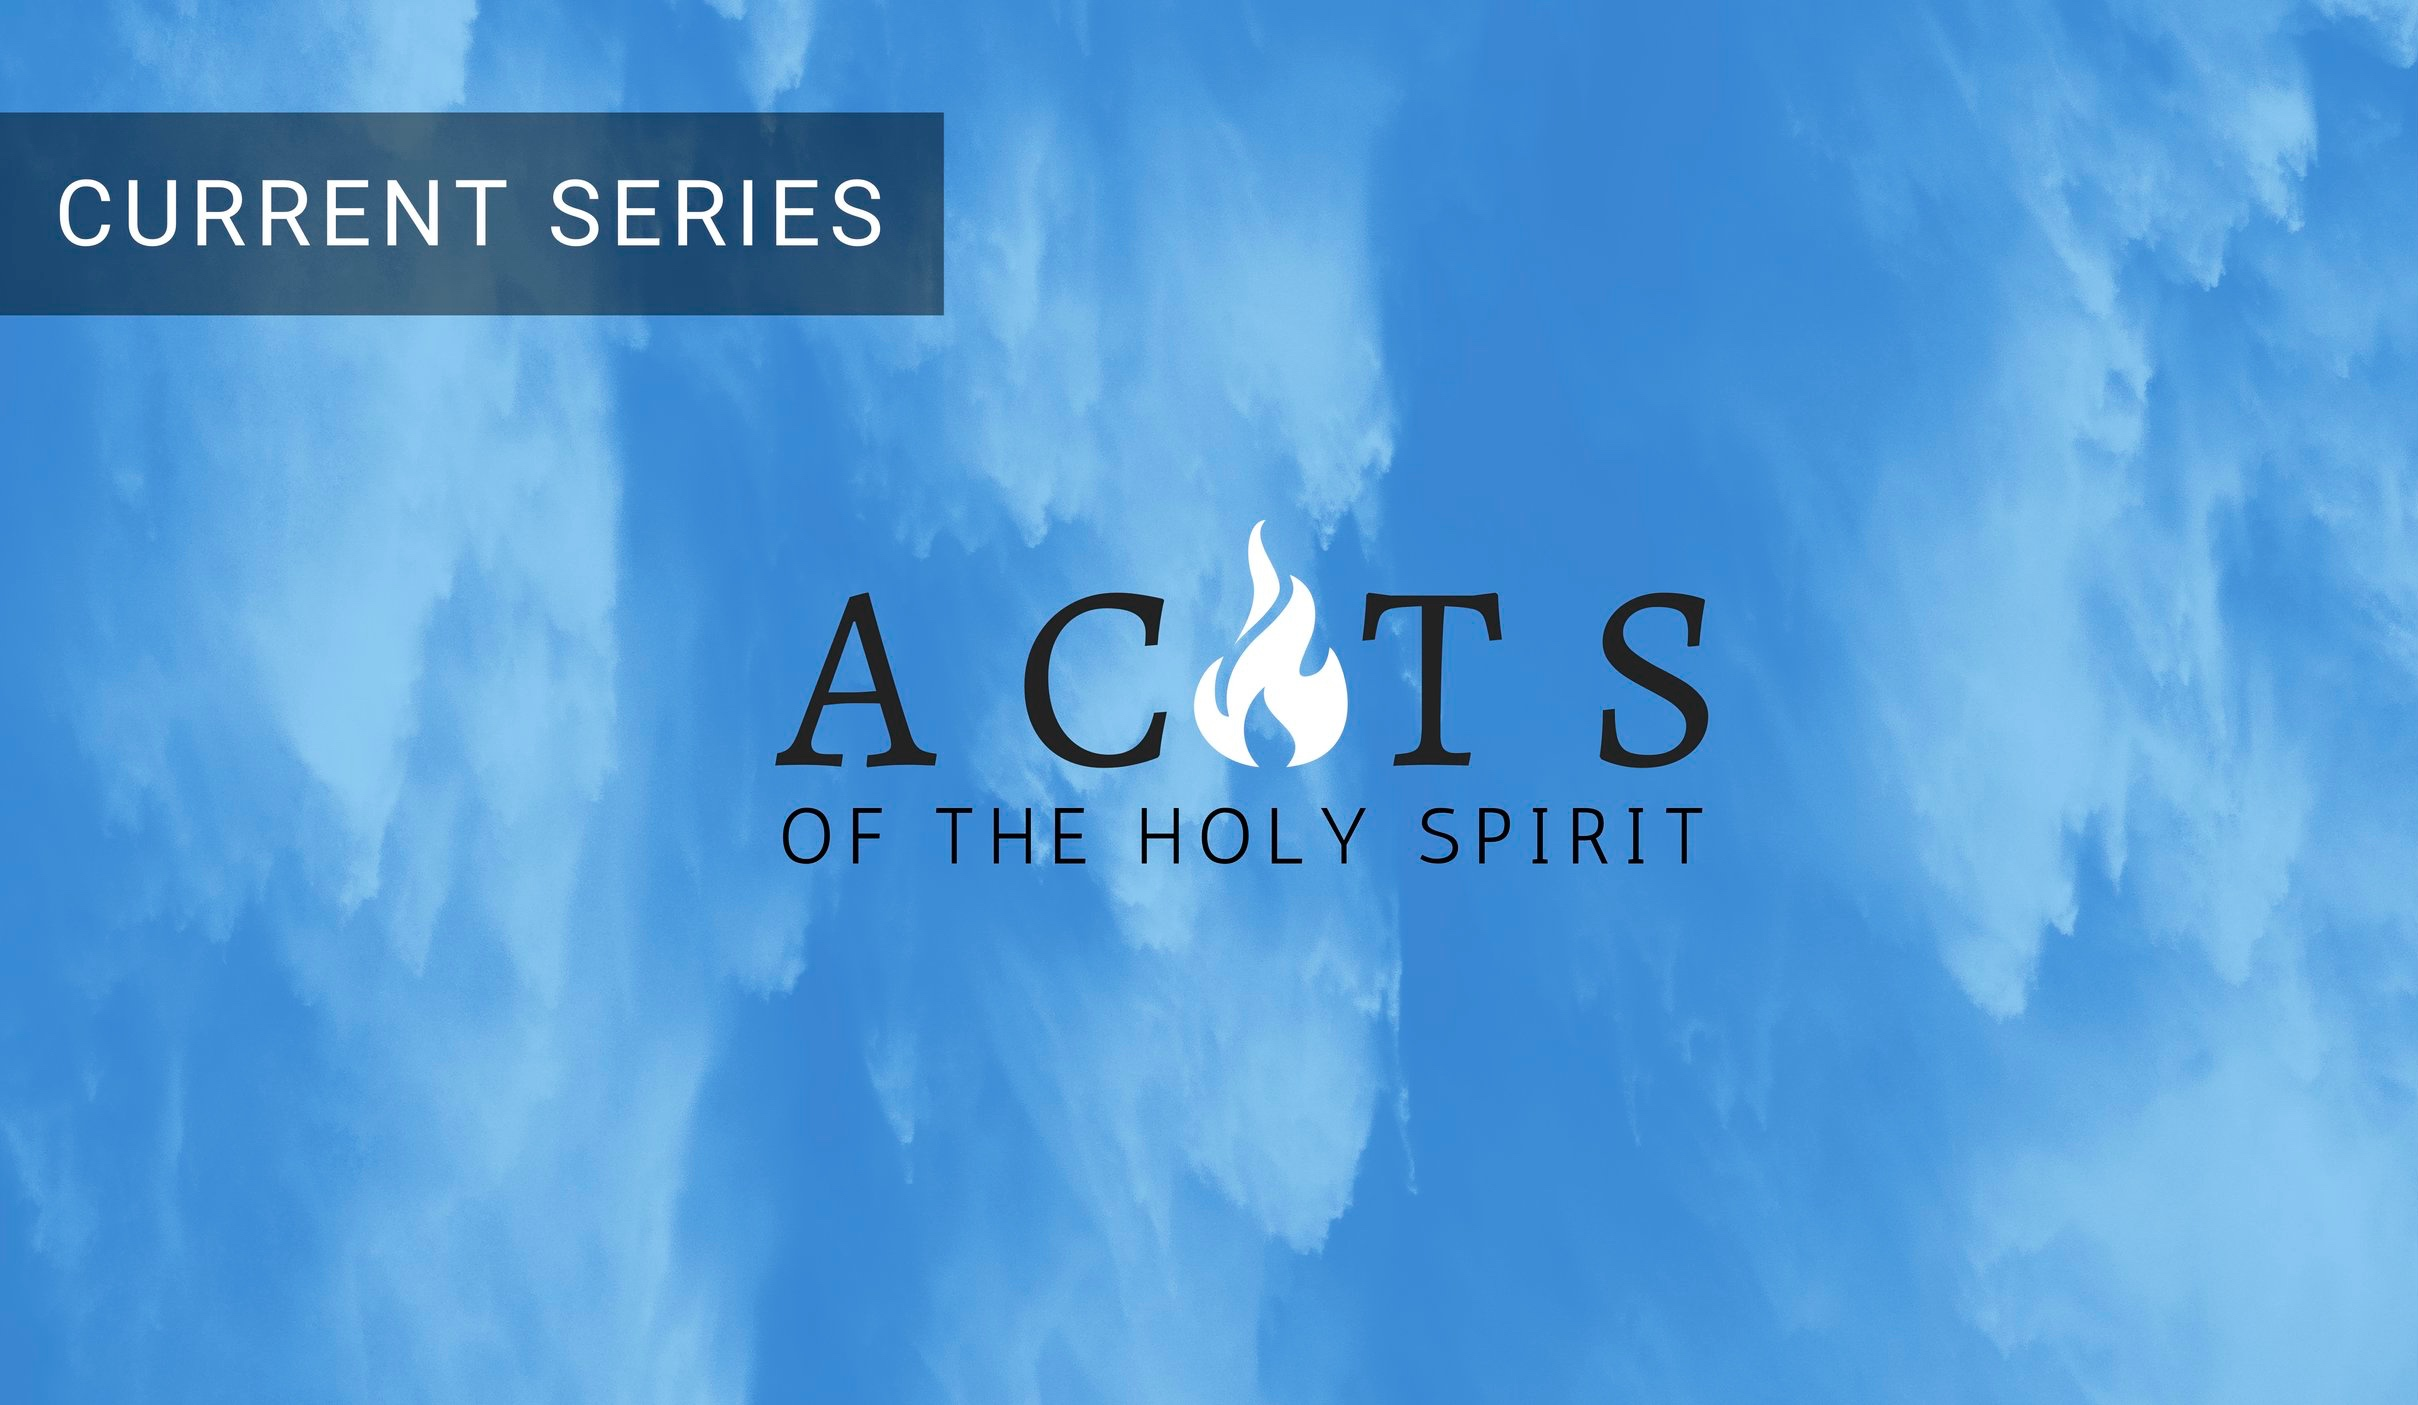 acts-sermon+series-church-houston+heights-anglican-episcopal-community-bible.jpg